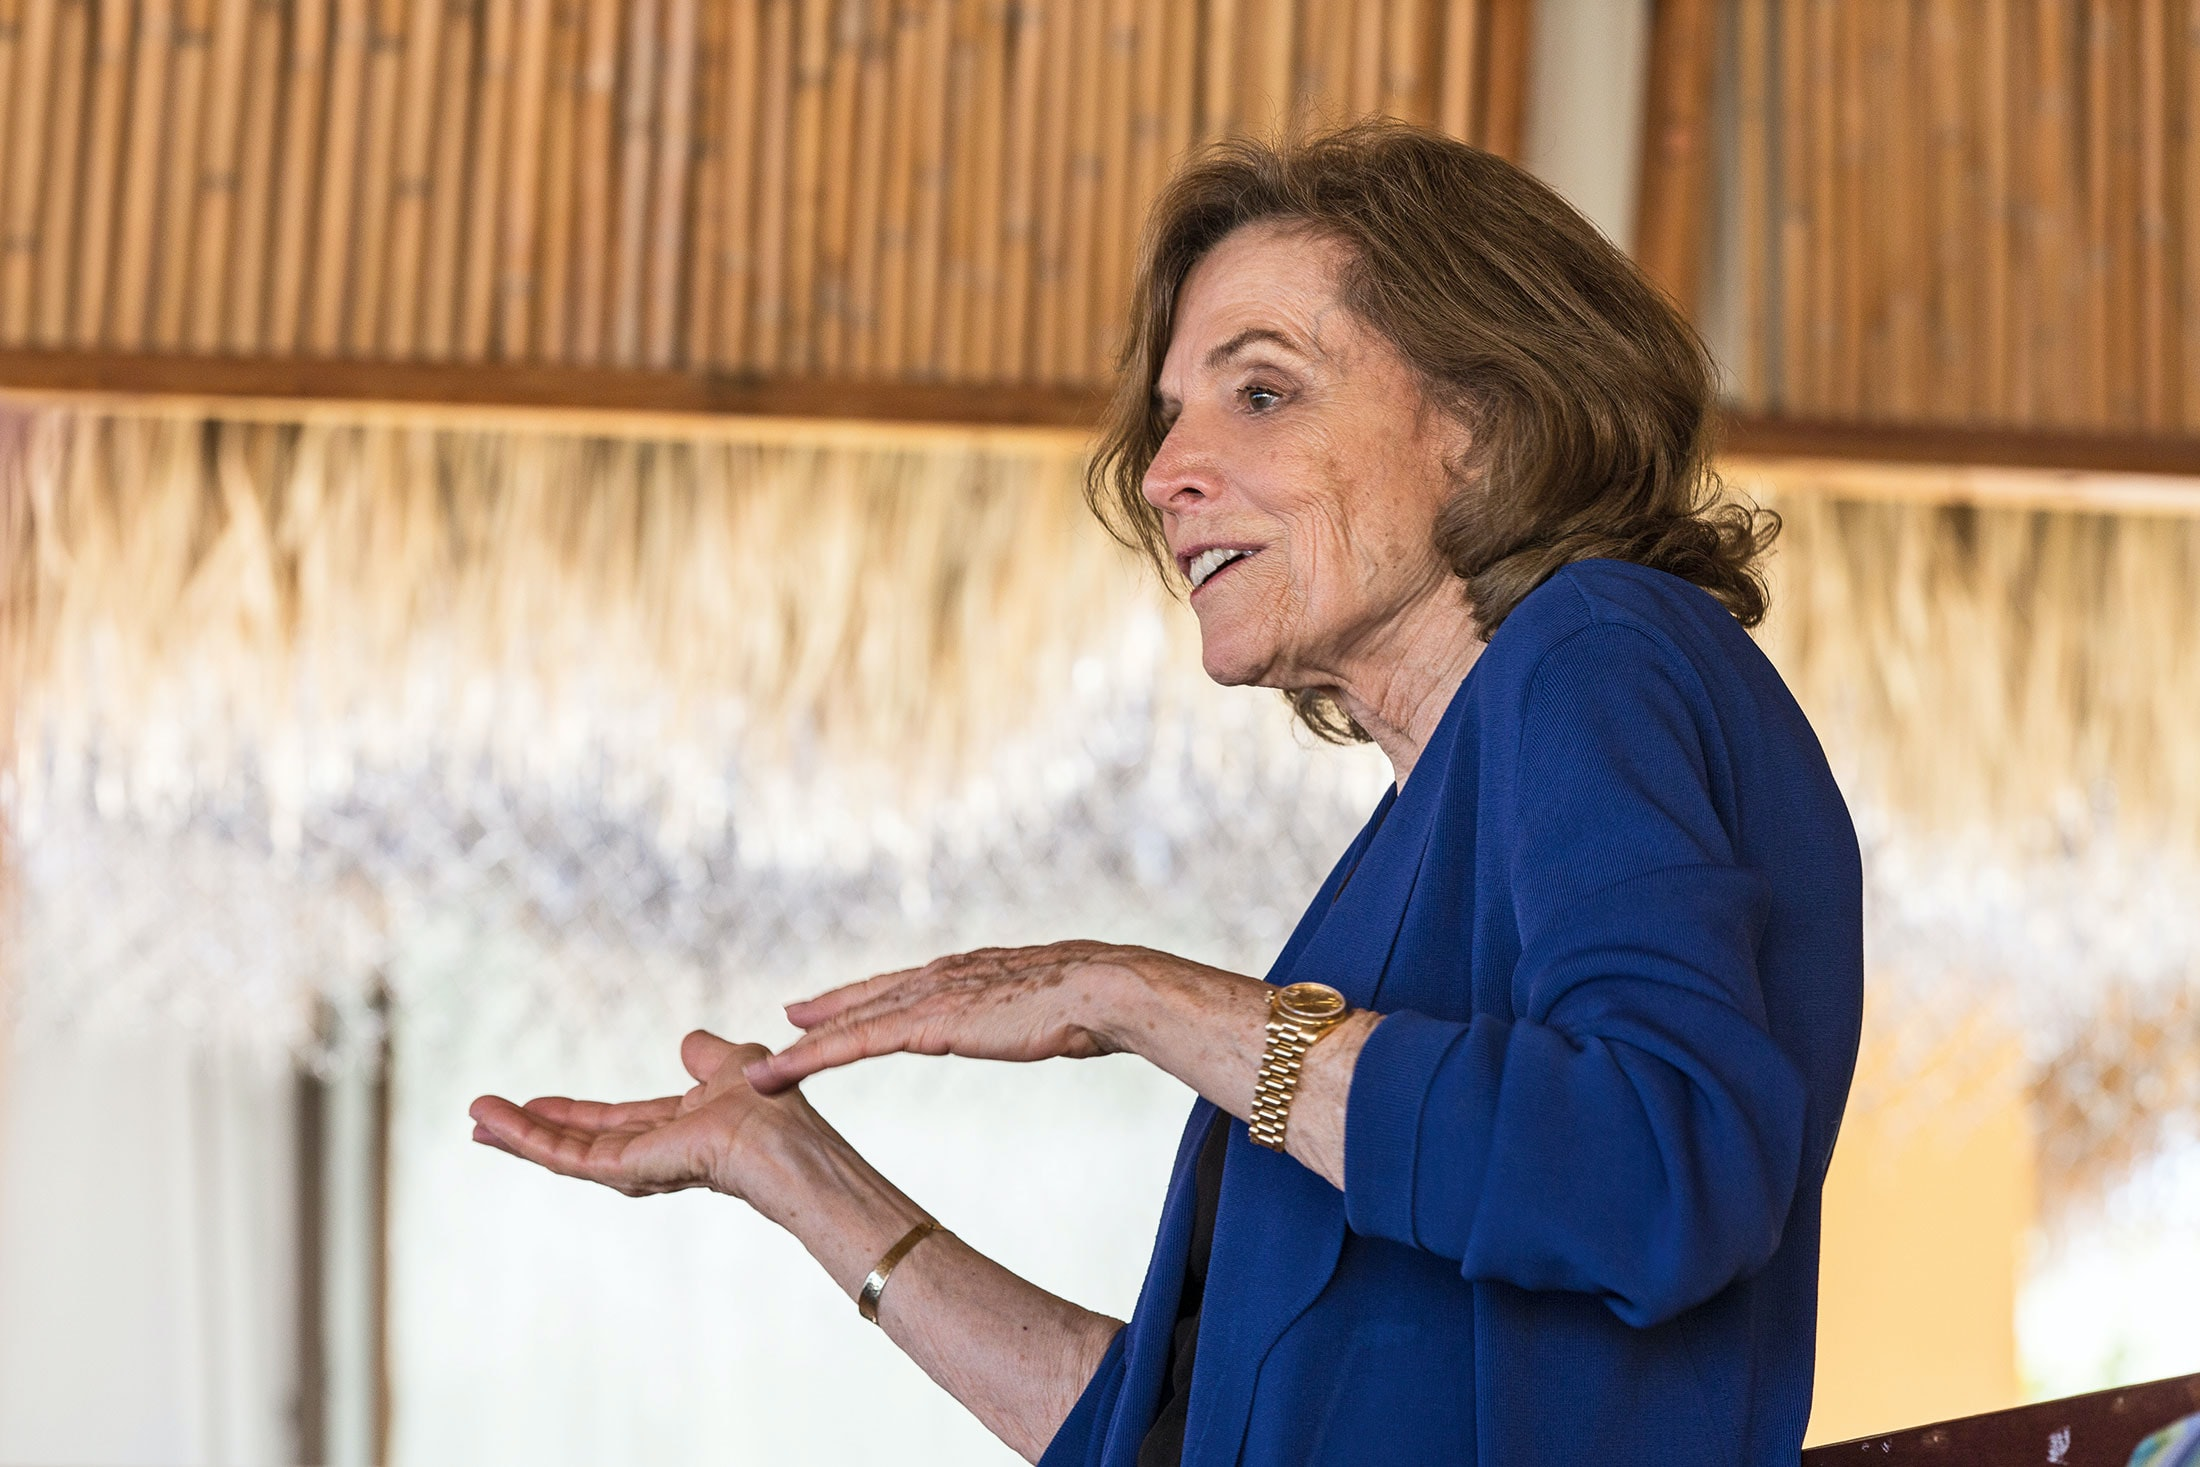 Dispatches: Diving With Her Deepness, Dr. Sylvia Earle Dispatches: Diving With Her Deepness, Dr. Sylvia Earle SEarle